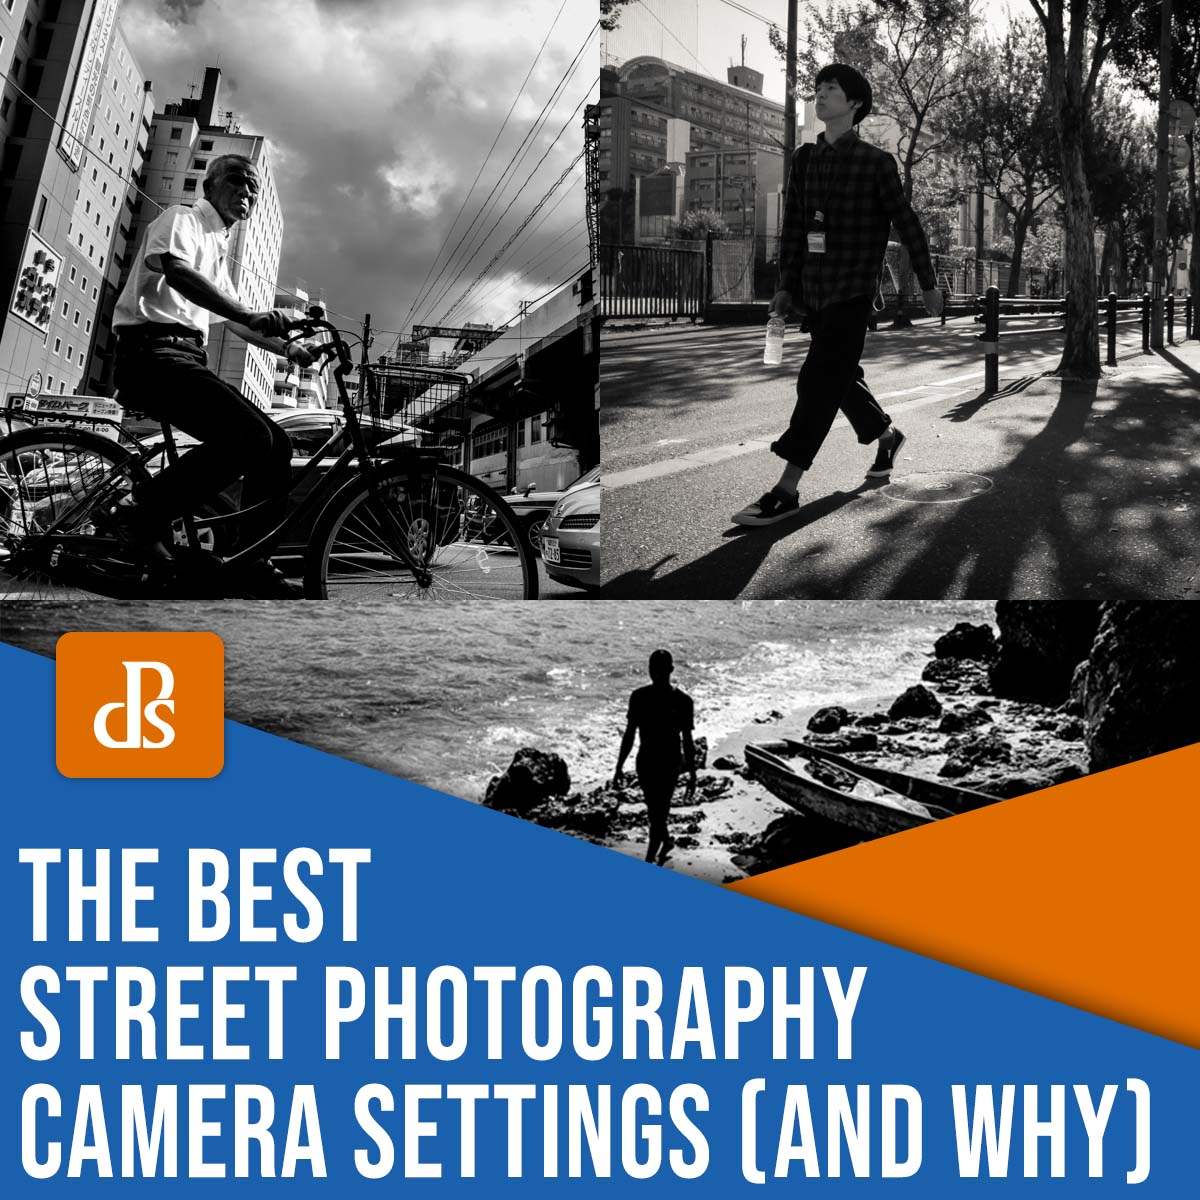 the best street photography camera settings (and why)